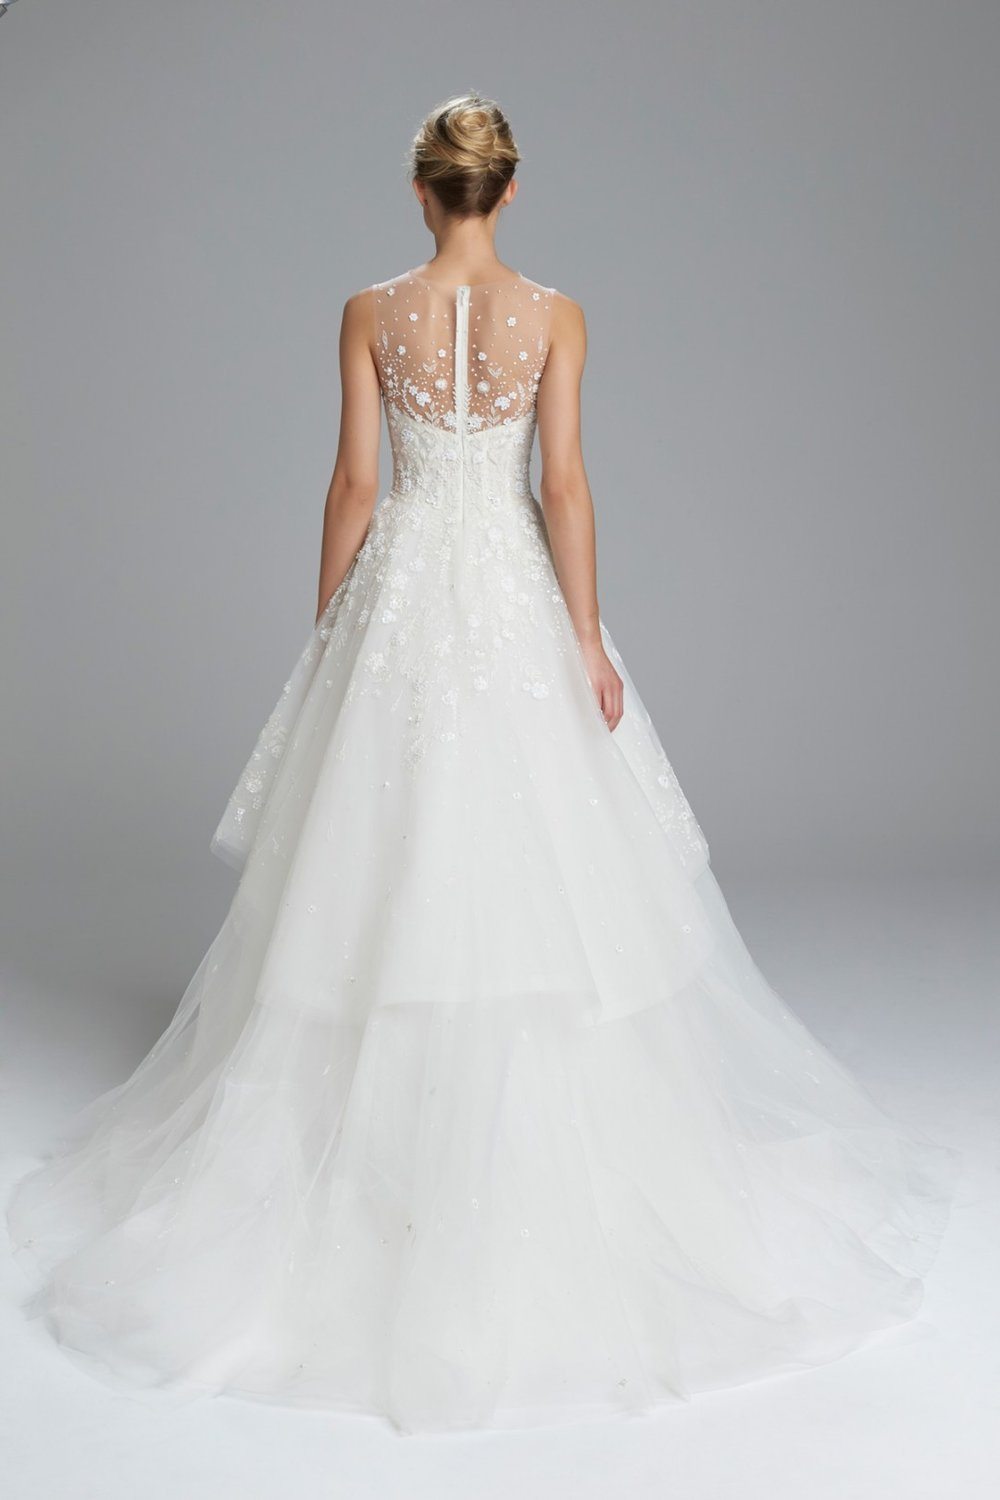 Tiered-tulle-ballgown-by-Amsale-Bridal_Kimpton-back-1080x1620.jpg